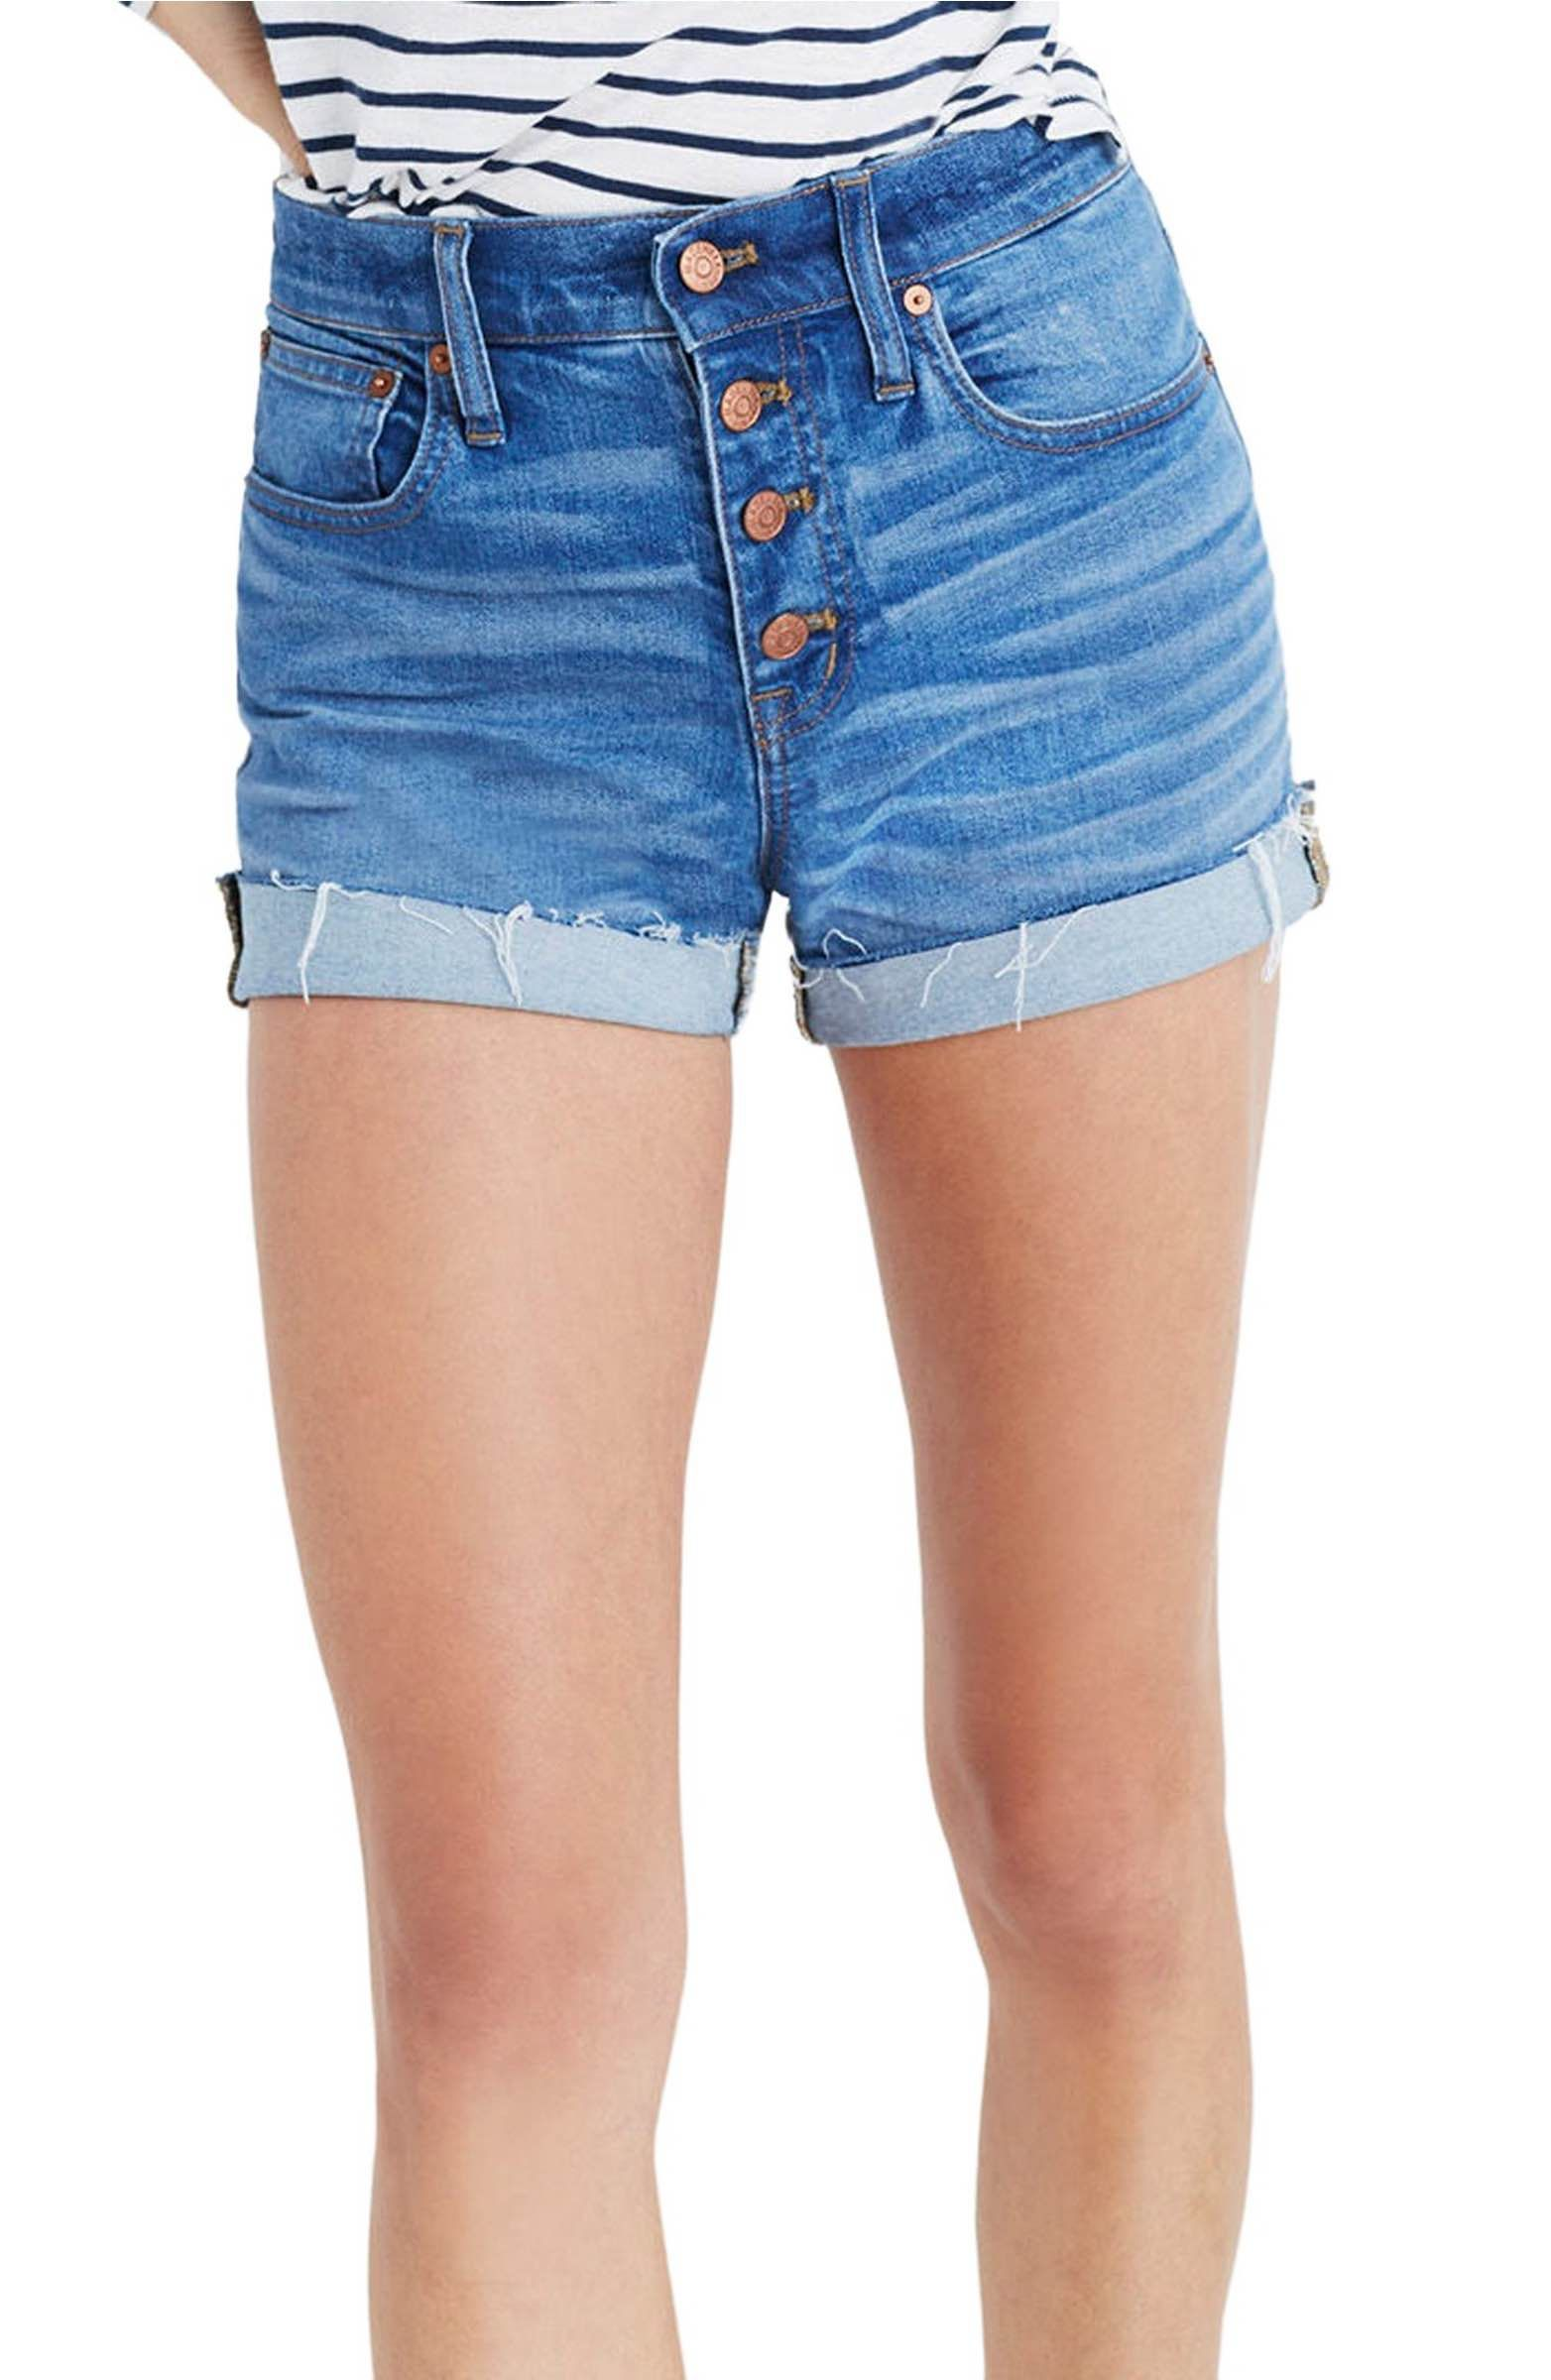 4b2e78cc2 Main Image - Madewell High Rise Denim Boyshorts (Clanton Wash ...